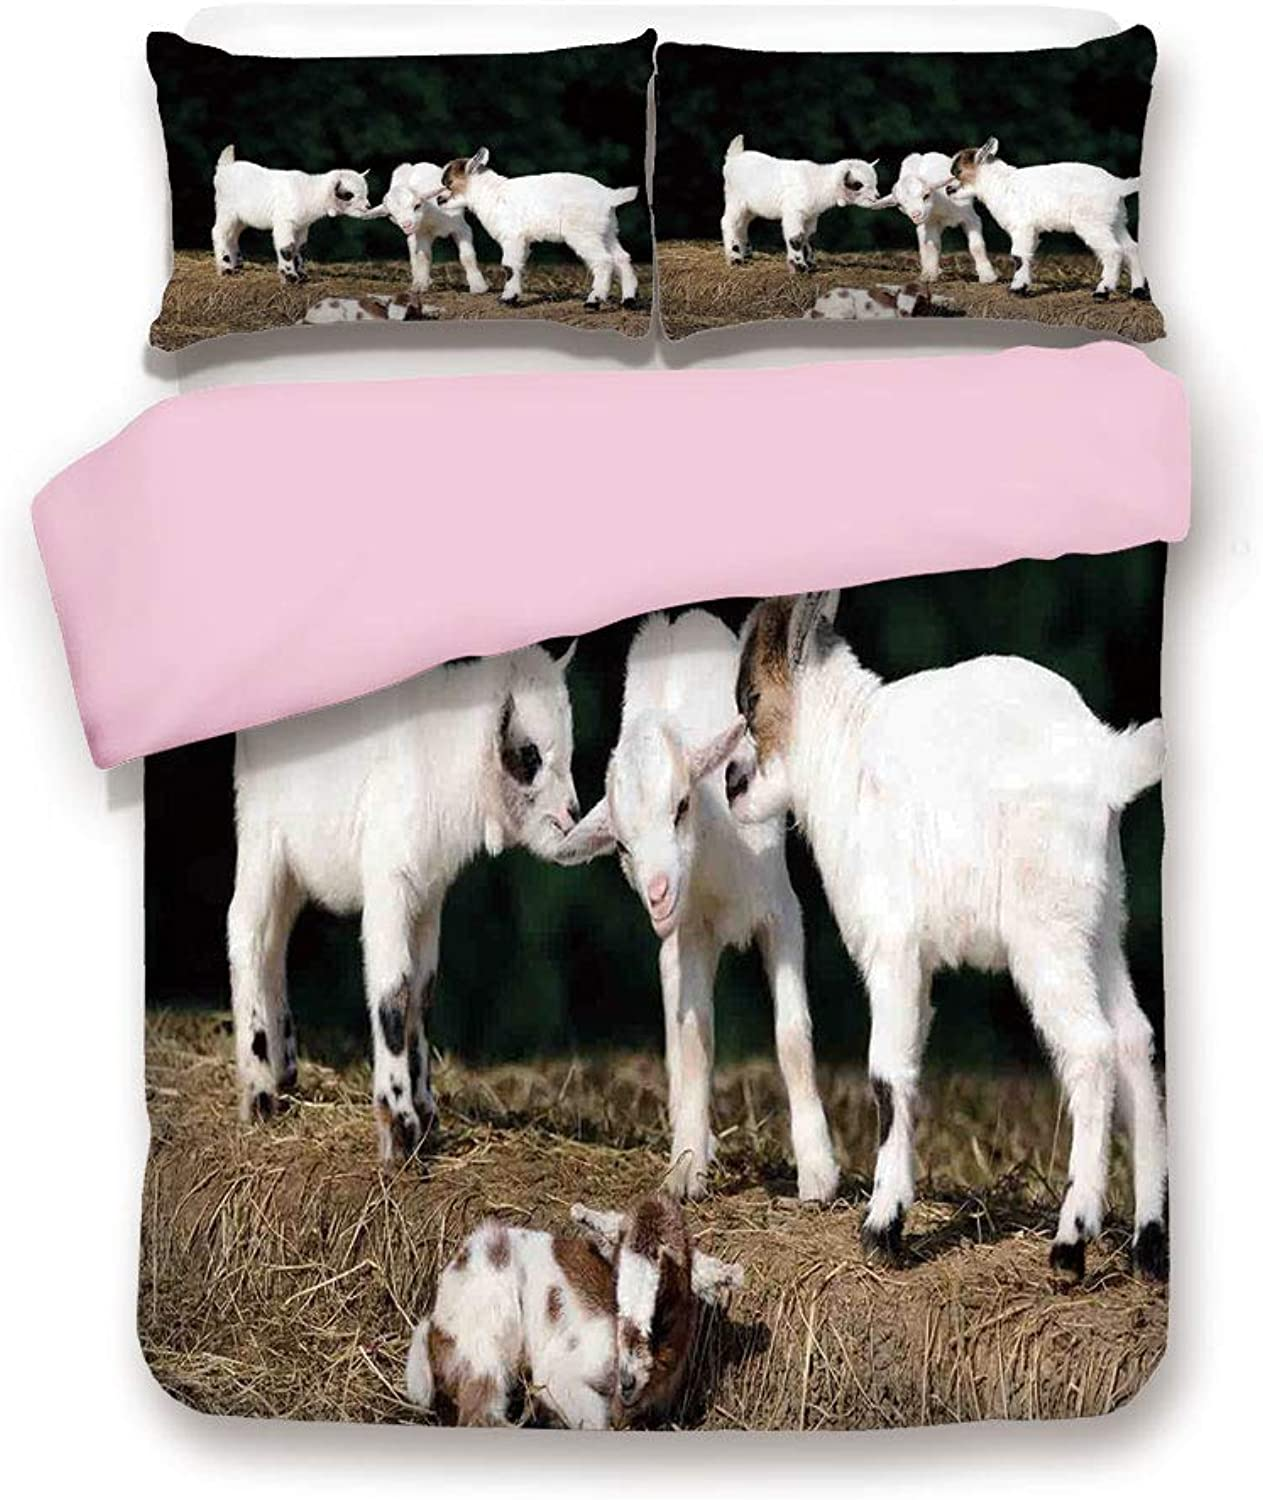 Pink Duvet Cover Set& xFF0F;Queen Size& xFF0F;Cute Adorable Baby Sibling Goats playing Eachother on a Solid Rock in a Farm& xFF0F;Decorative 3 Piece Bedding Set with 2 Pillow Sham& xFF0F;Best Gift For Girls Women& xFF0F;White and Brown